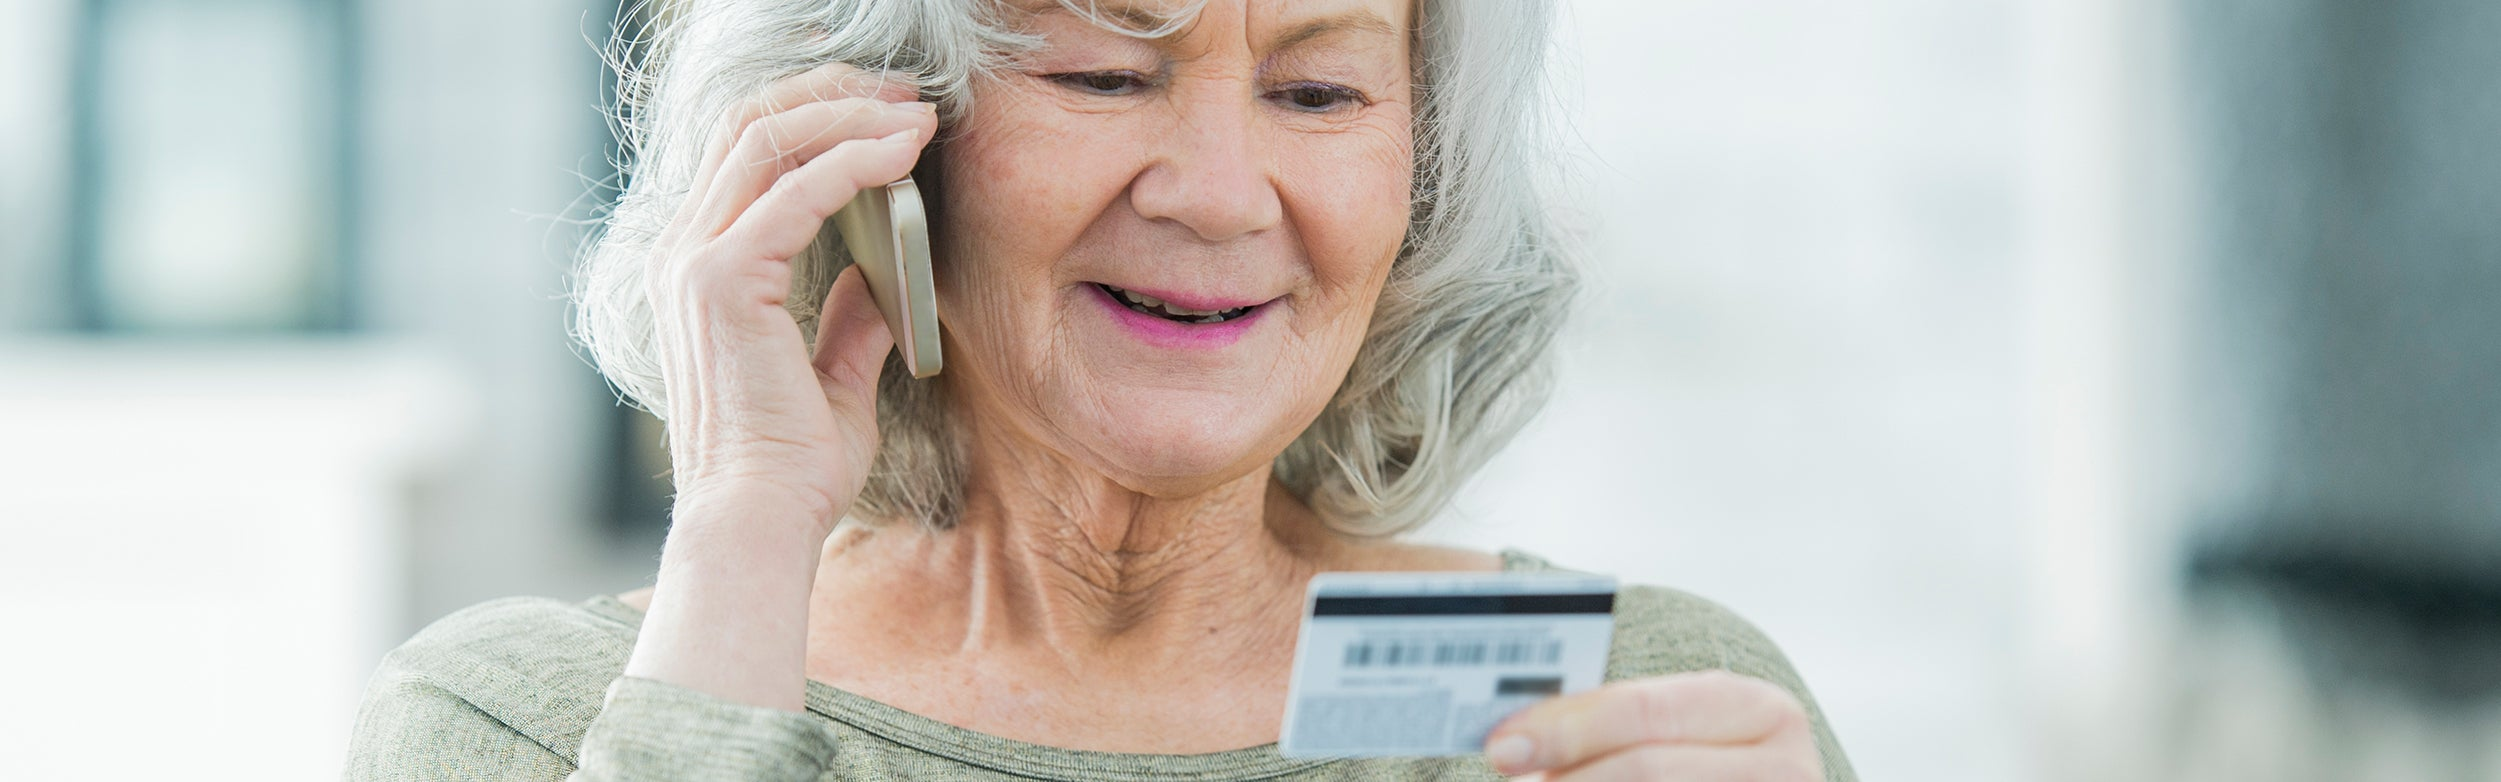 How to Protect Seniors From Scams, Fraud and Identity Theft